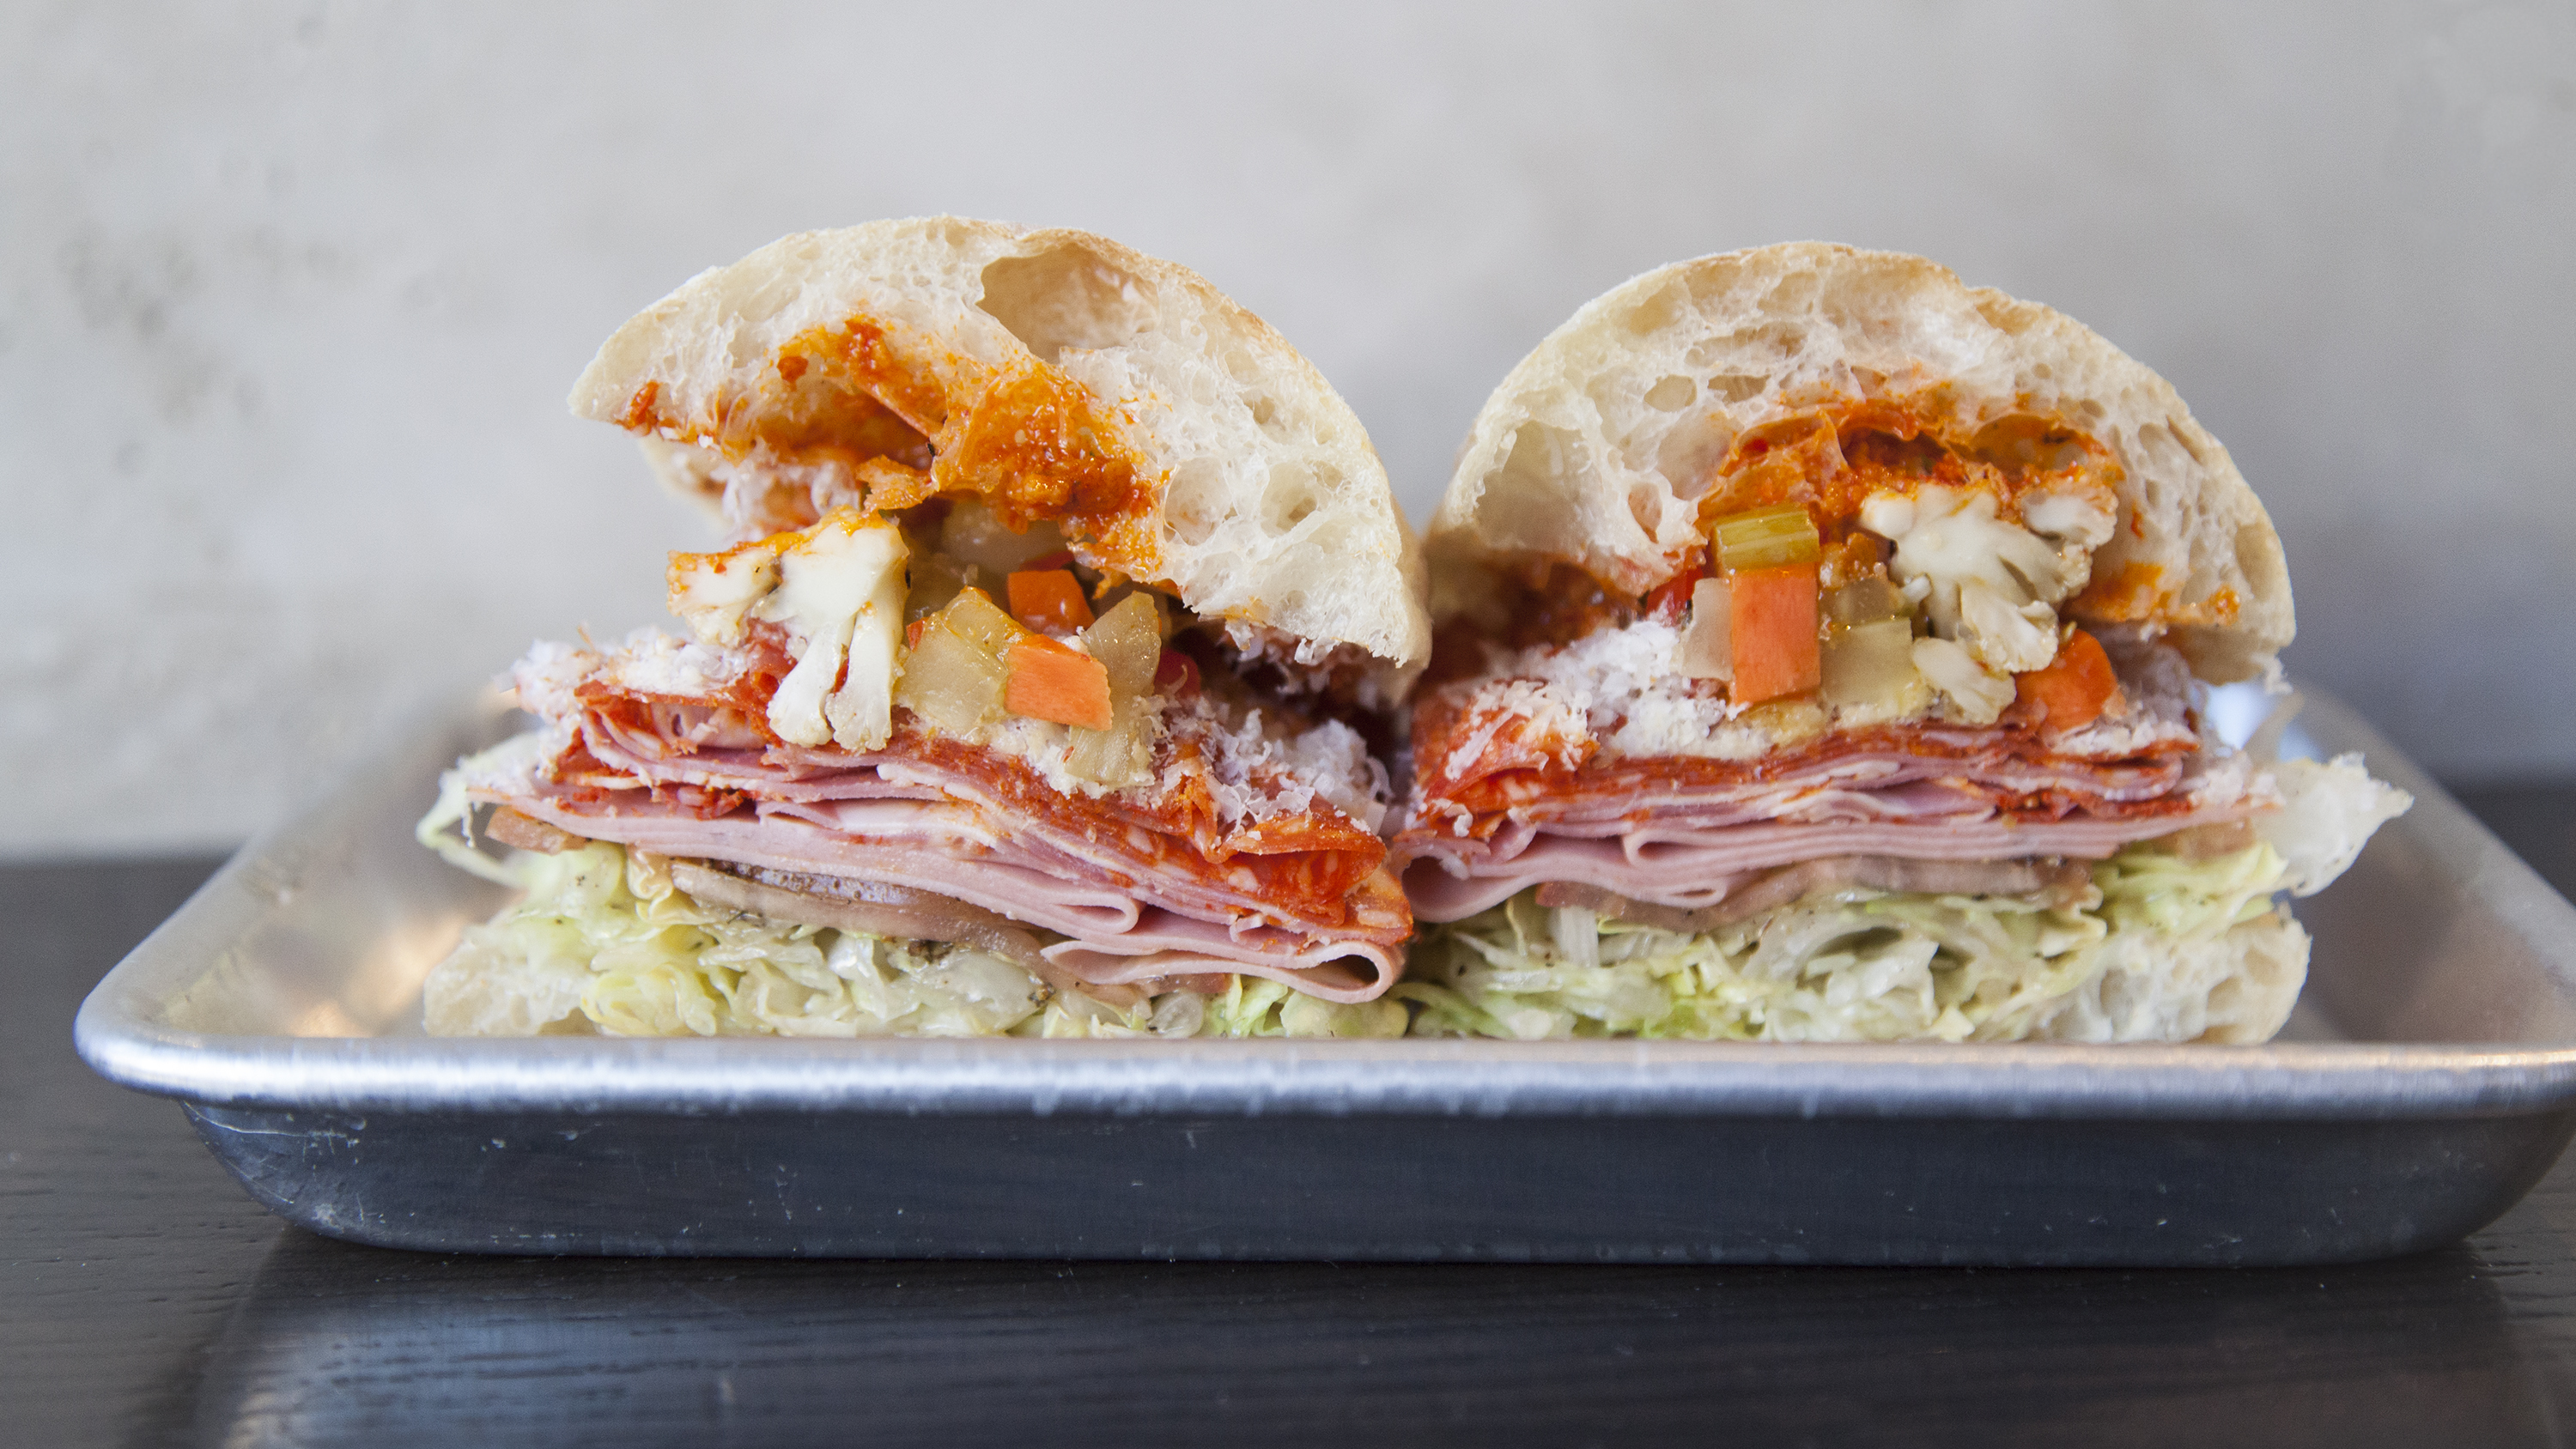 Best Sandwich Shops And Best Sandwiches In Los Angeles